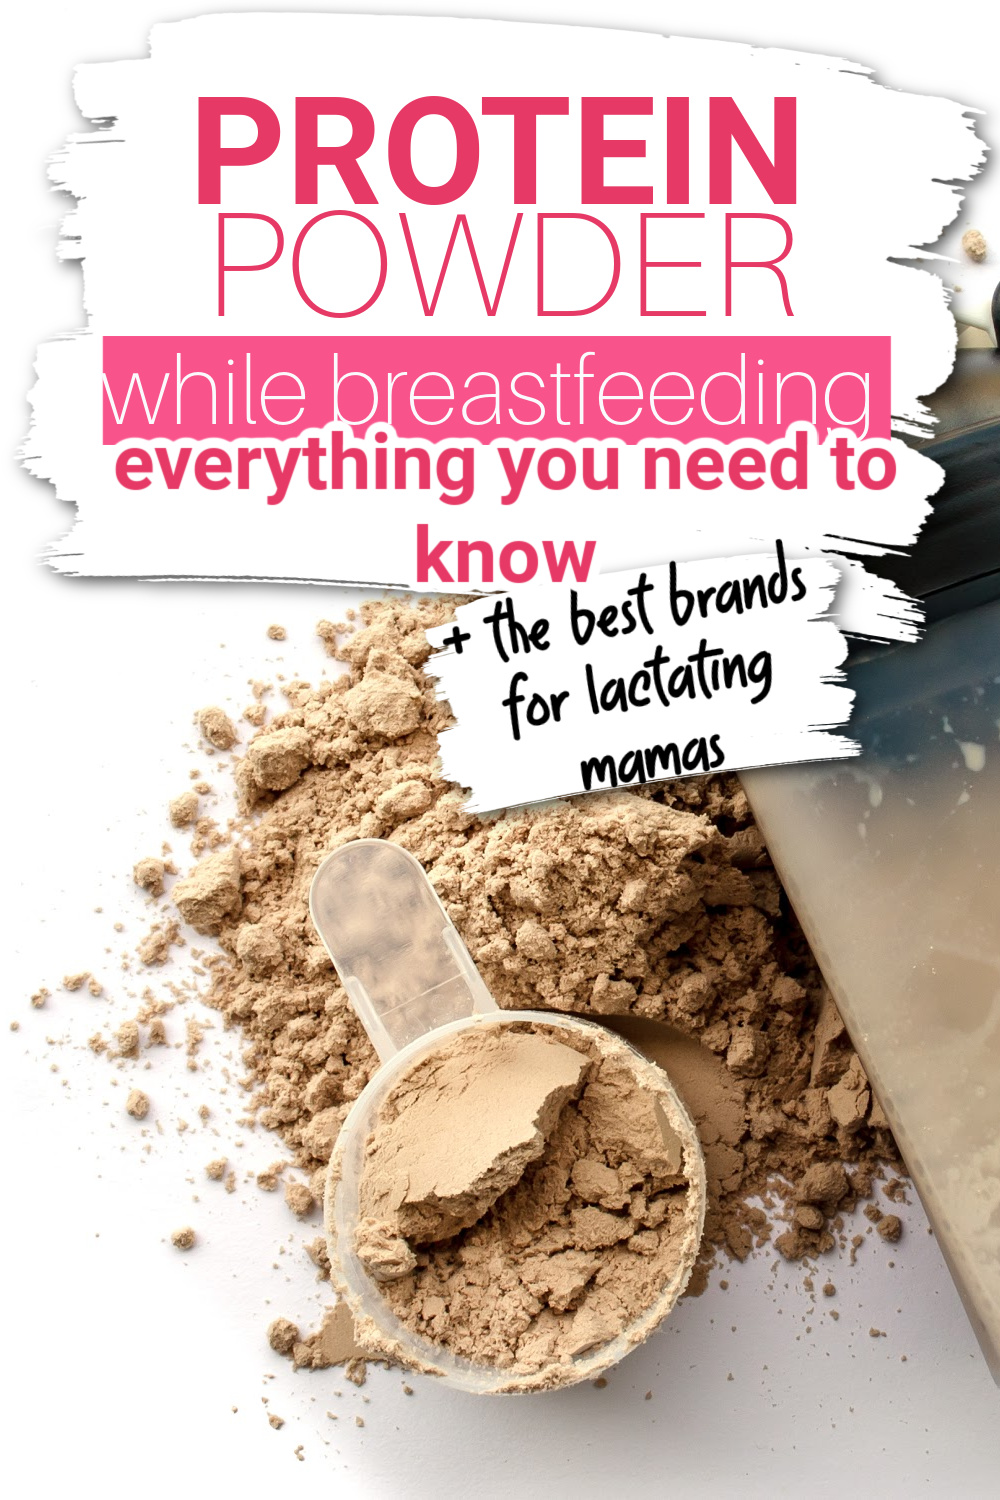 Are you wanting to use protein powder while breastfeeding? Many women wonder how safe it is, and if there are any brands that are safe while breastfeeding - or that might even increase milk supply. This article has everything you need to know about protein powder and breastfeeding, along with our favorite protein powders for breastfeeding mothers.